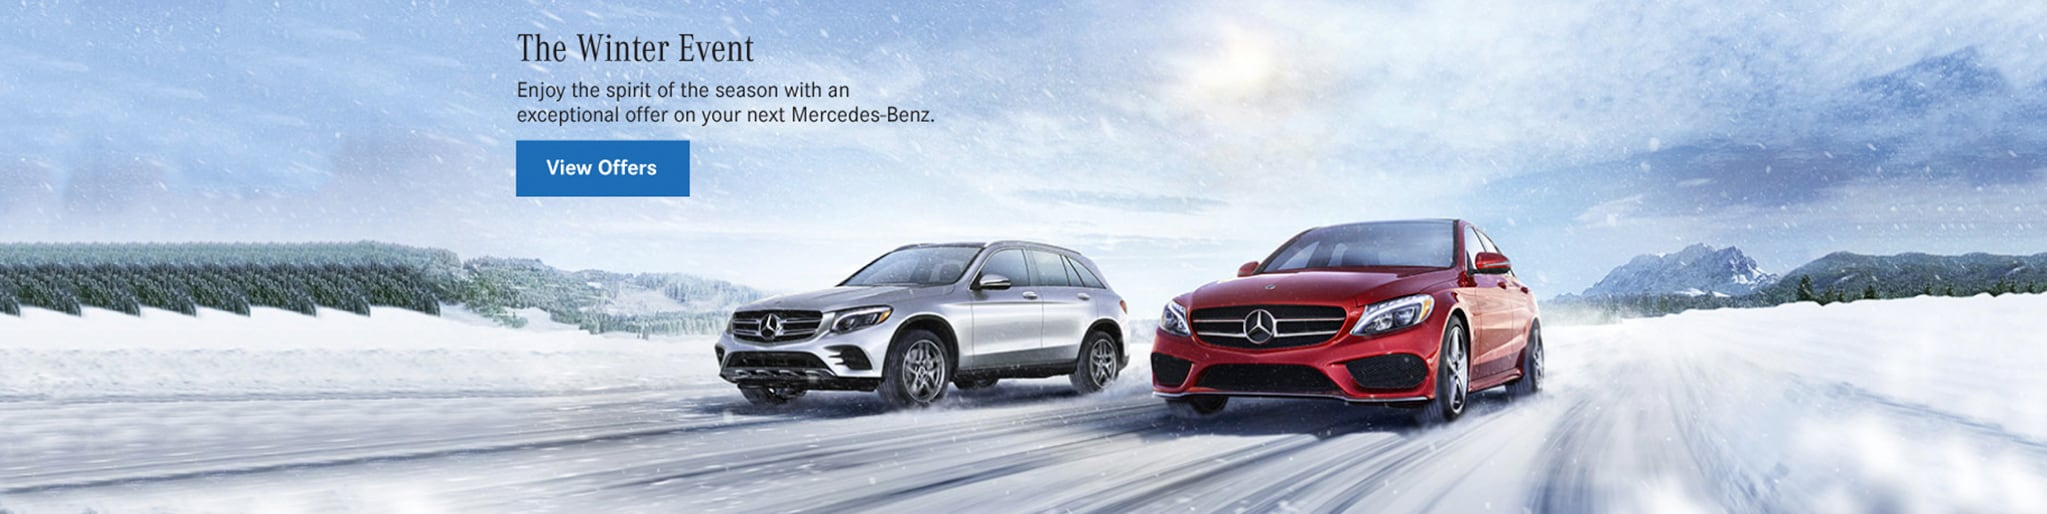 Mercedes benz chesterfield serving st louis mo mercedes for Plaza mercedes benz st louis